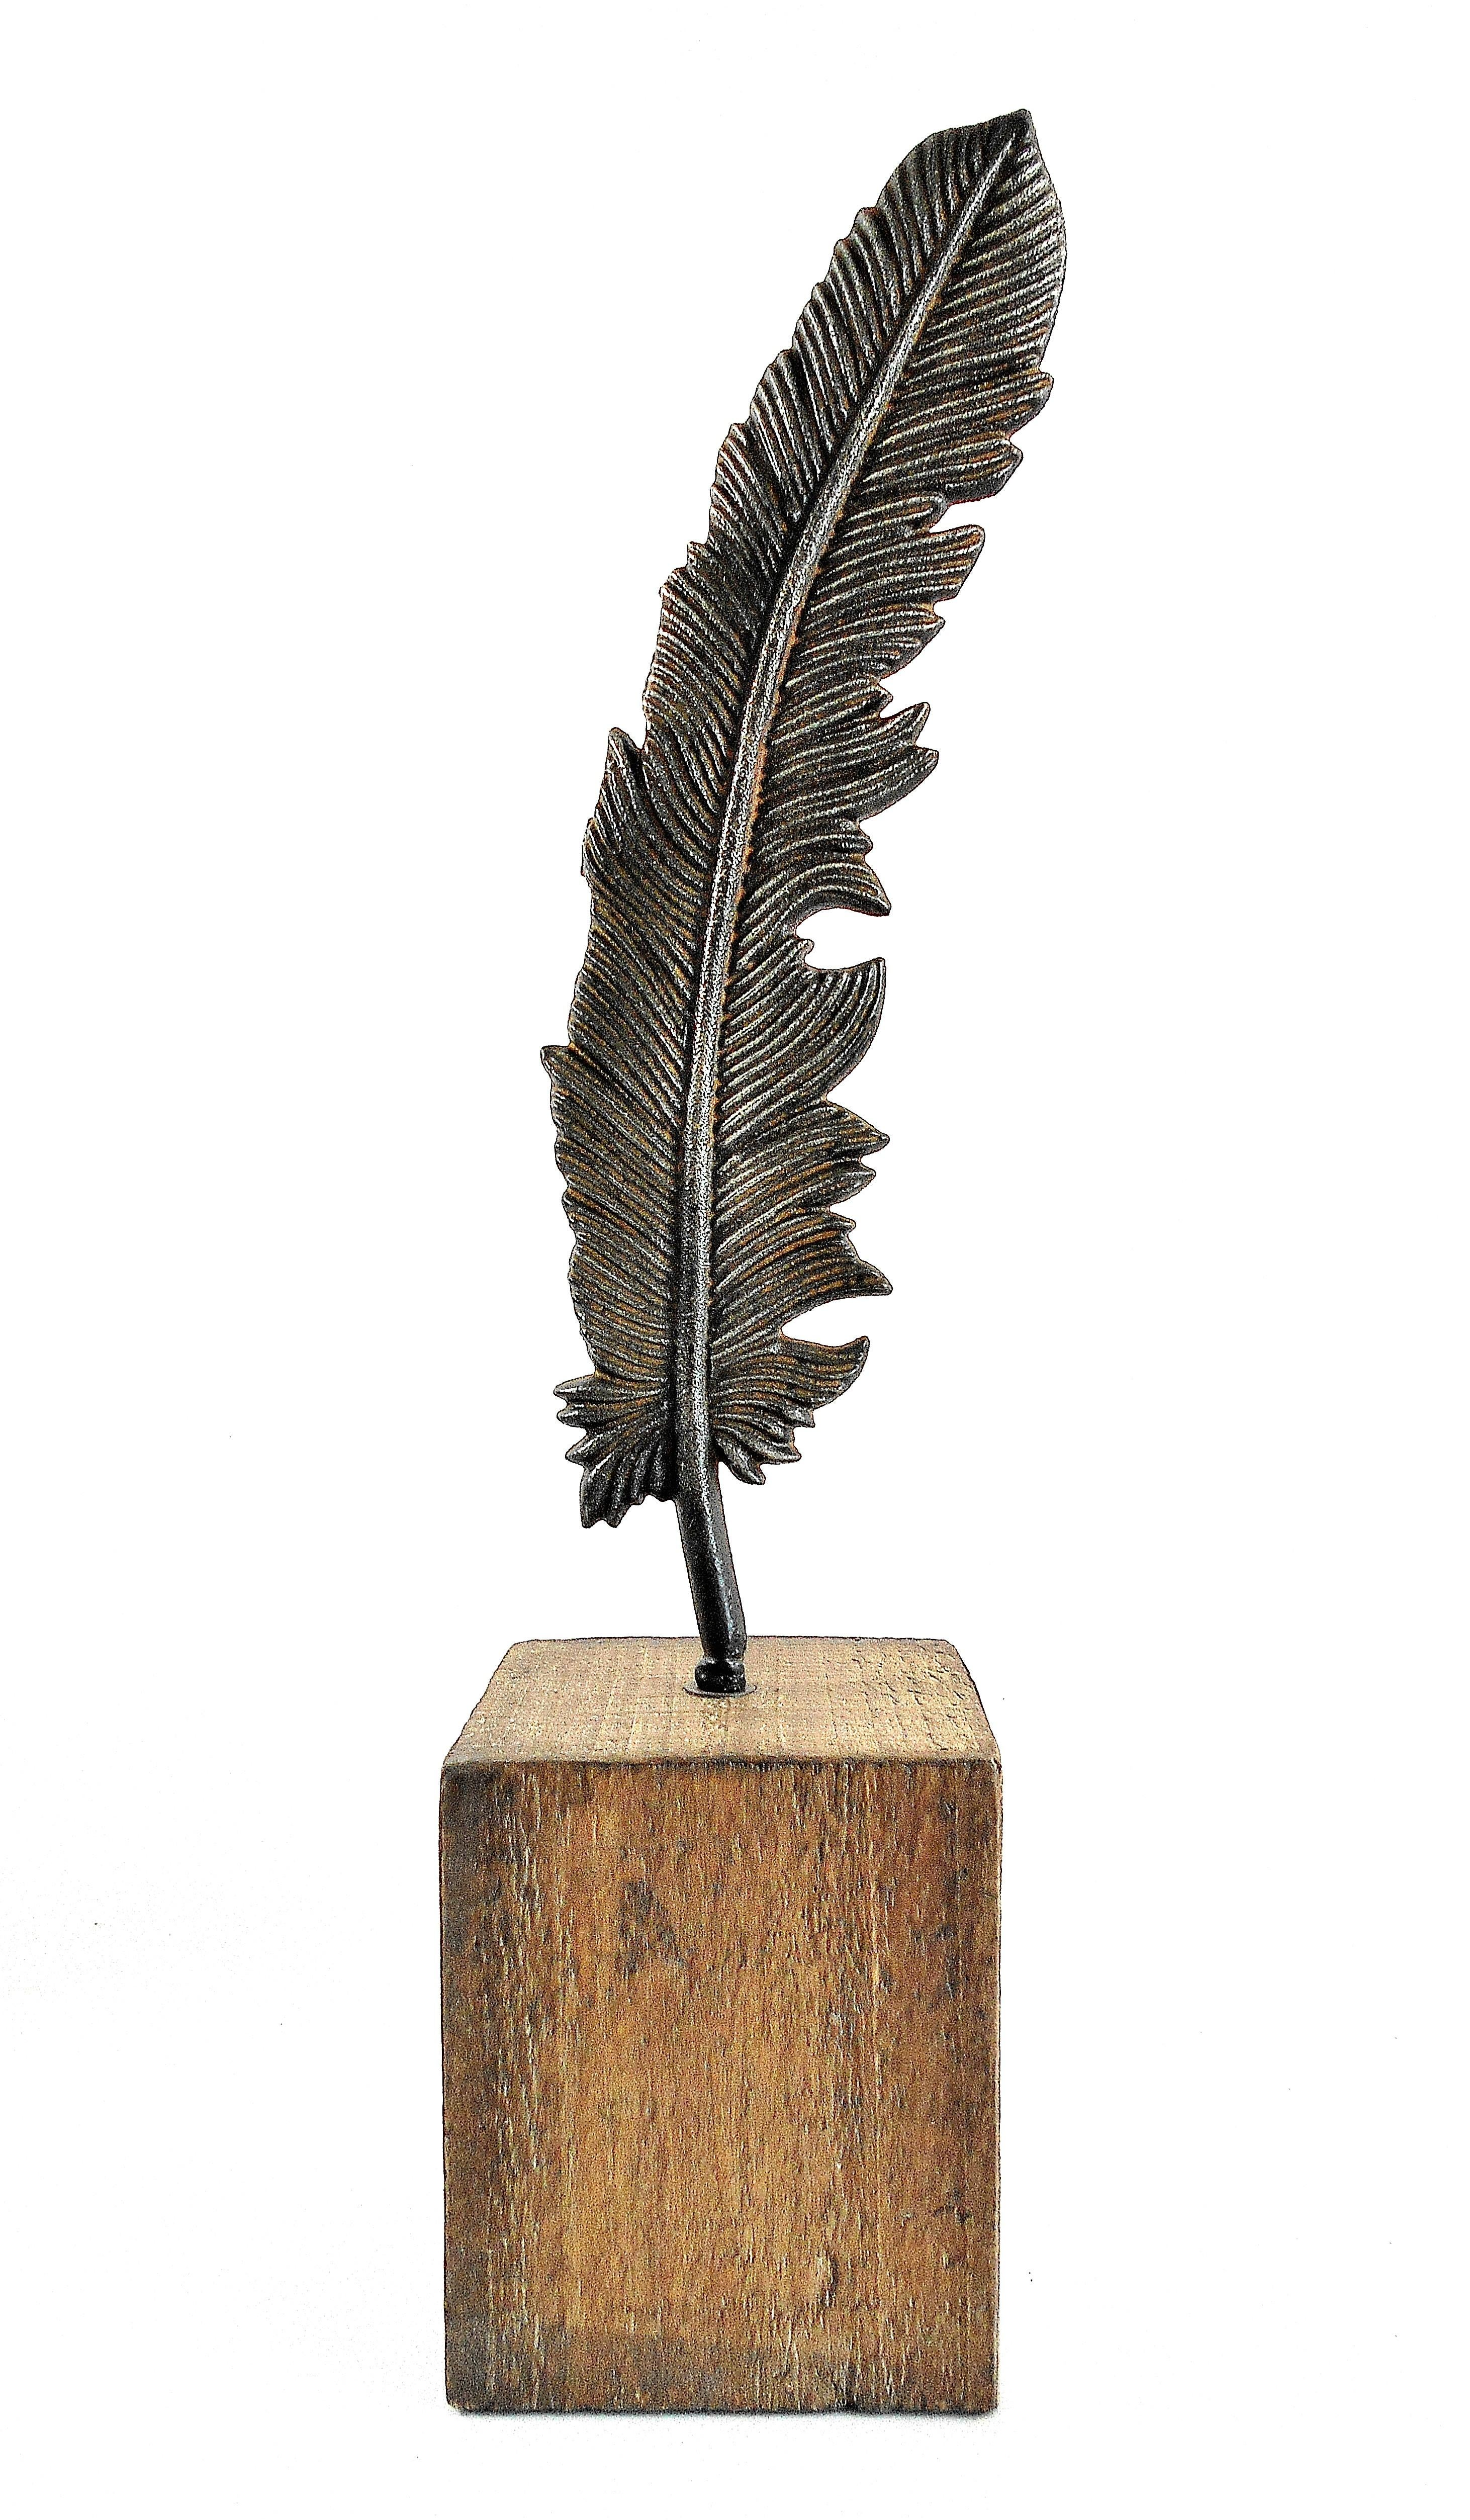 popular art the maestro for sculpture soul fine of awakening pedestals collection pedestal